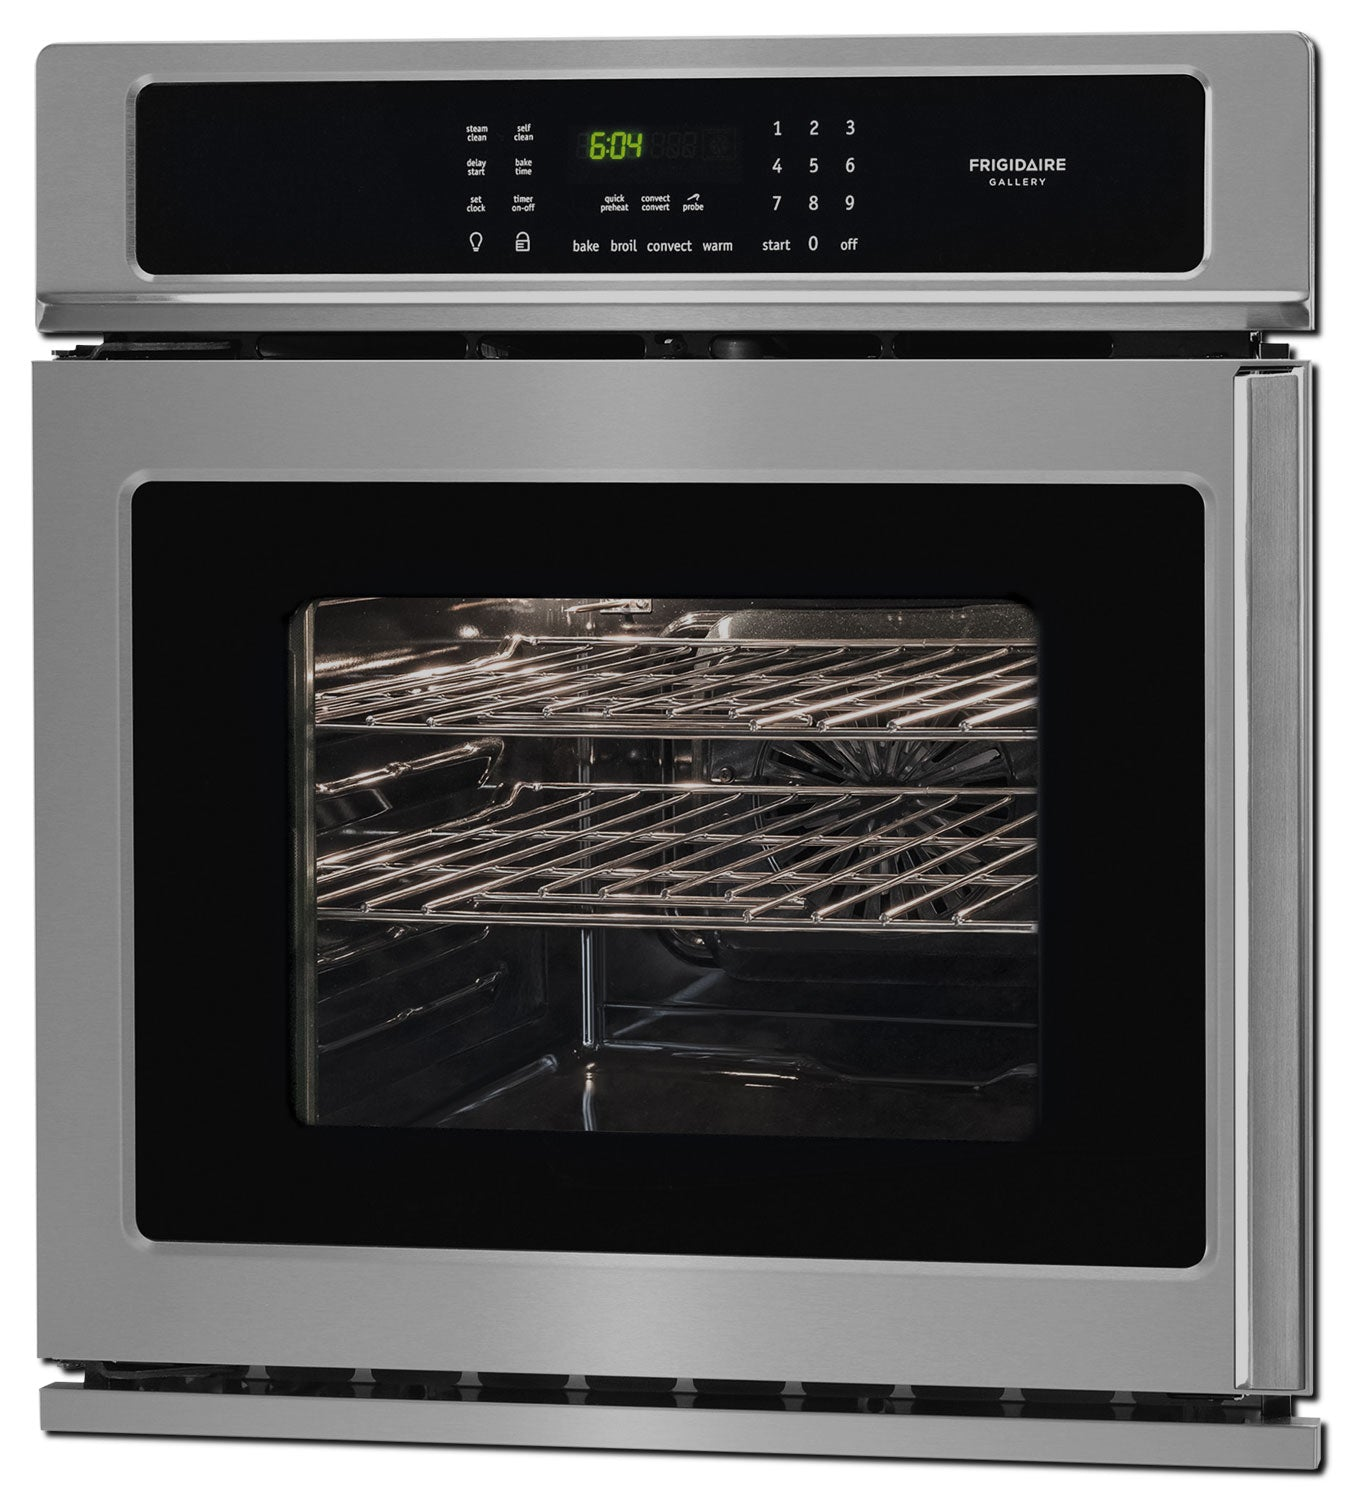 frigidaire gallery 3 8 cu ft single wall oven \u2013 fgew276spf the bricktap to expand